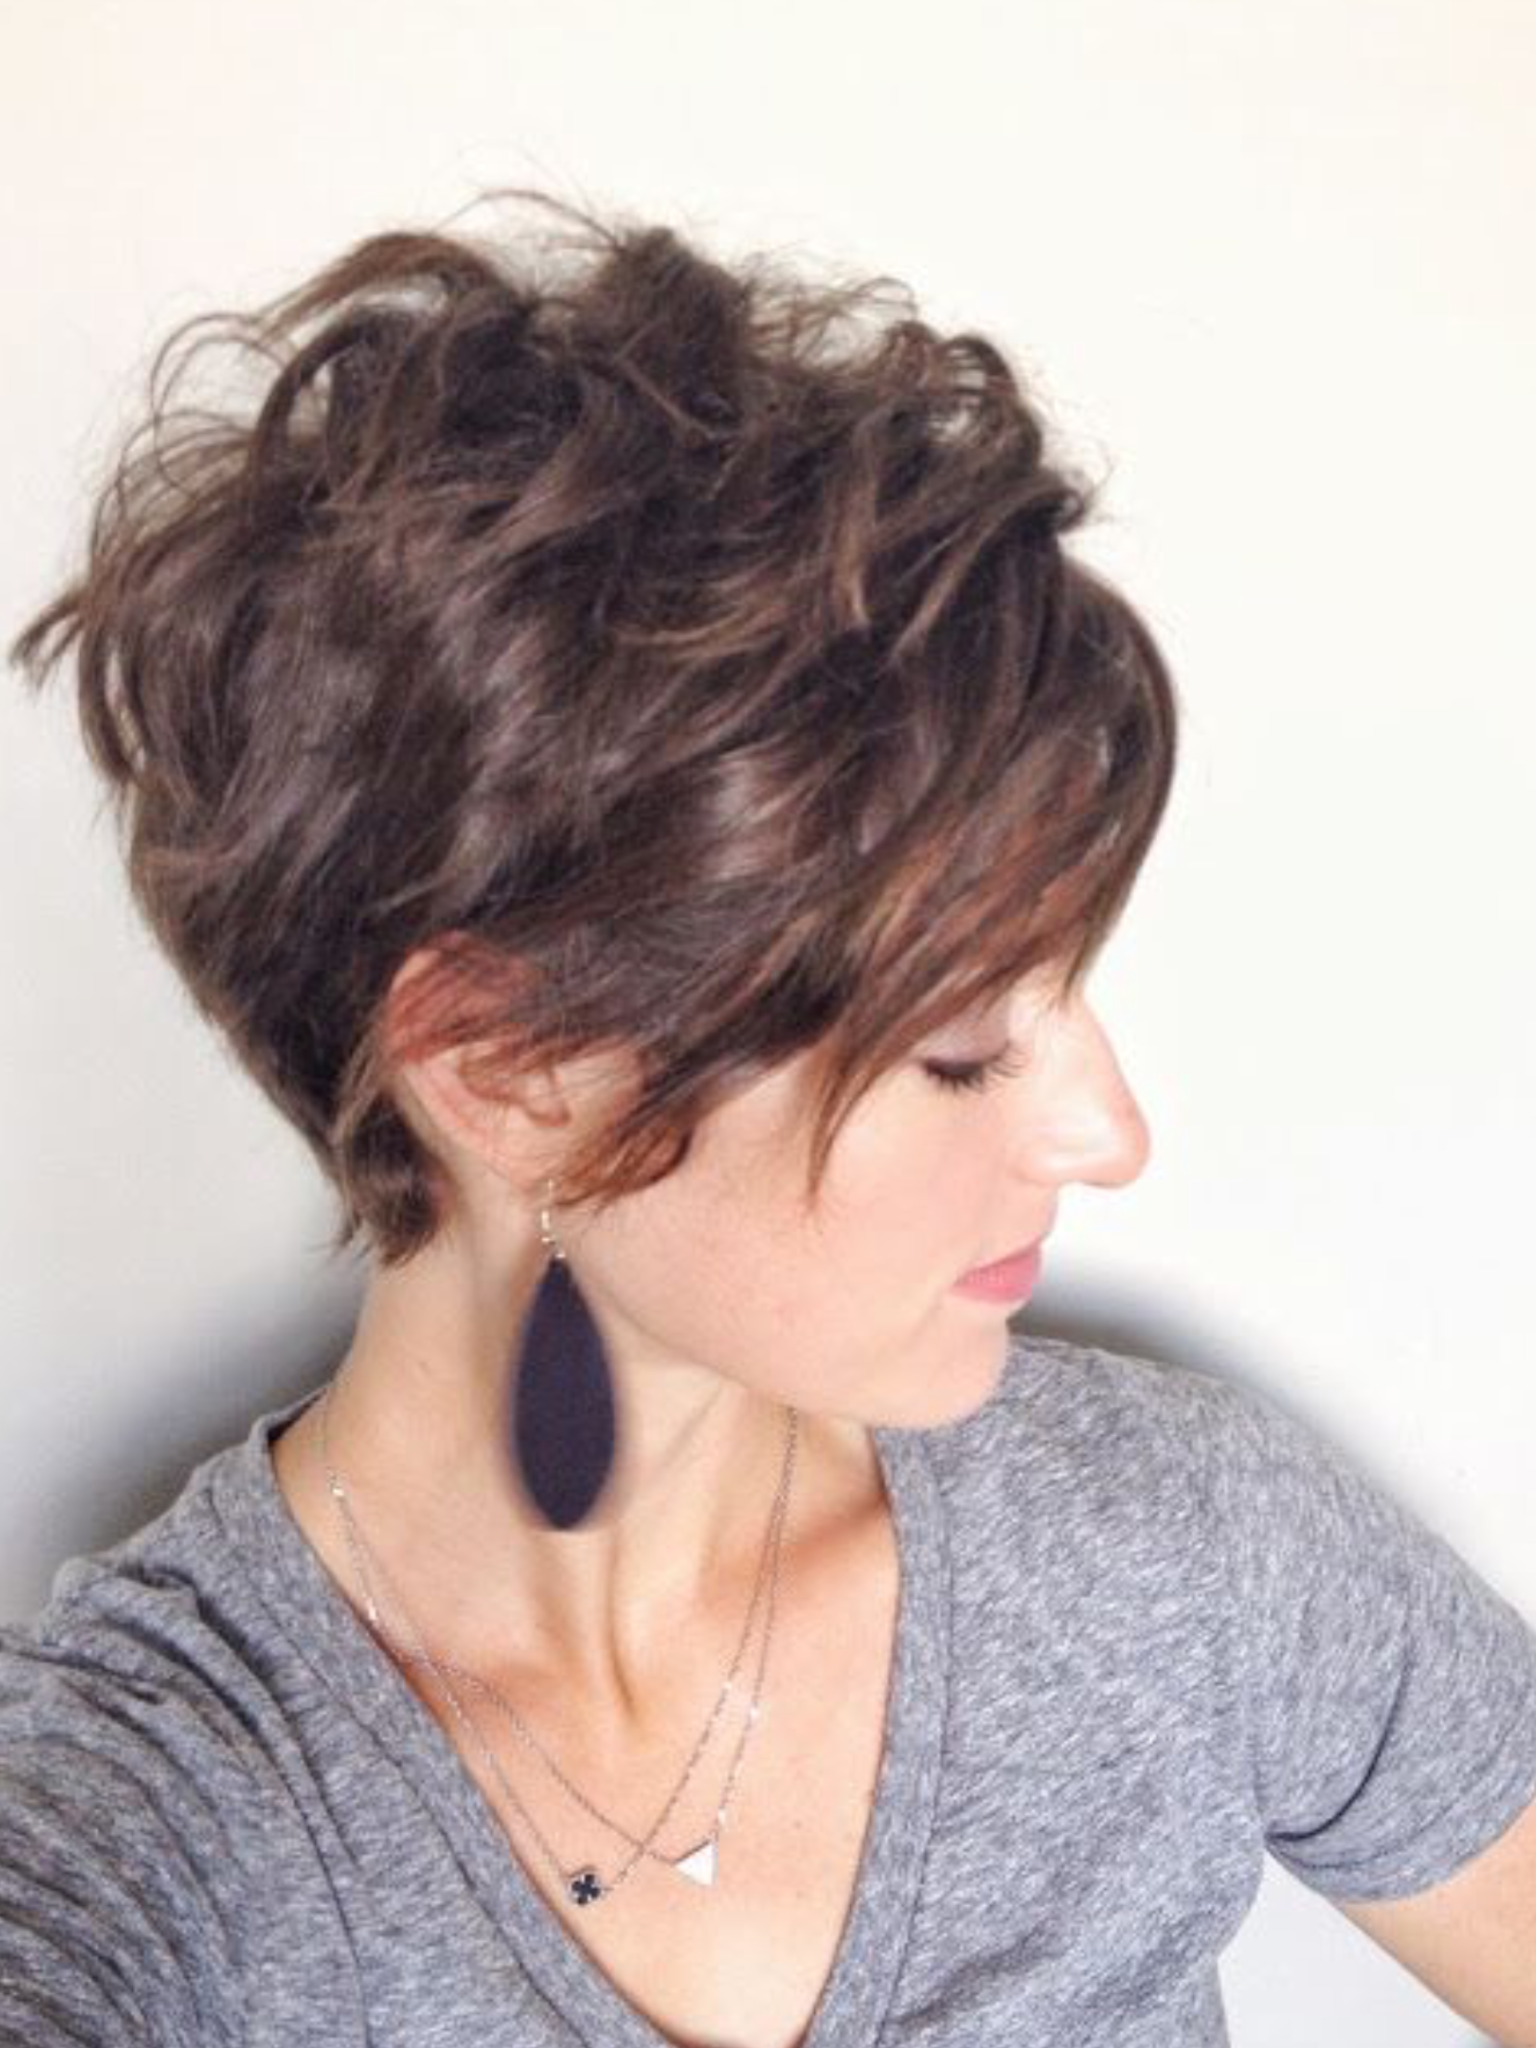 Pin On What To Do With My Hair